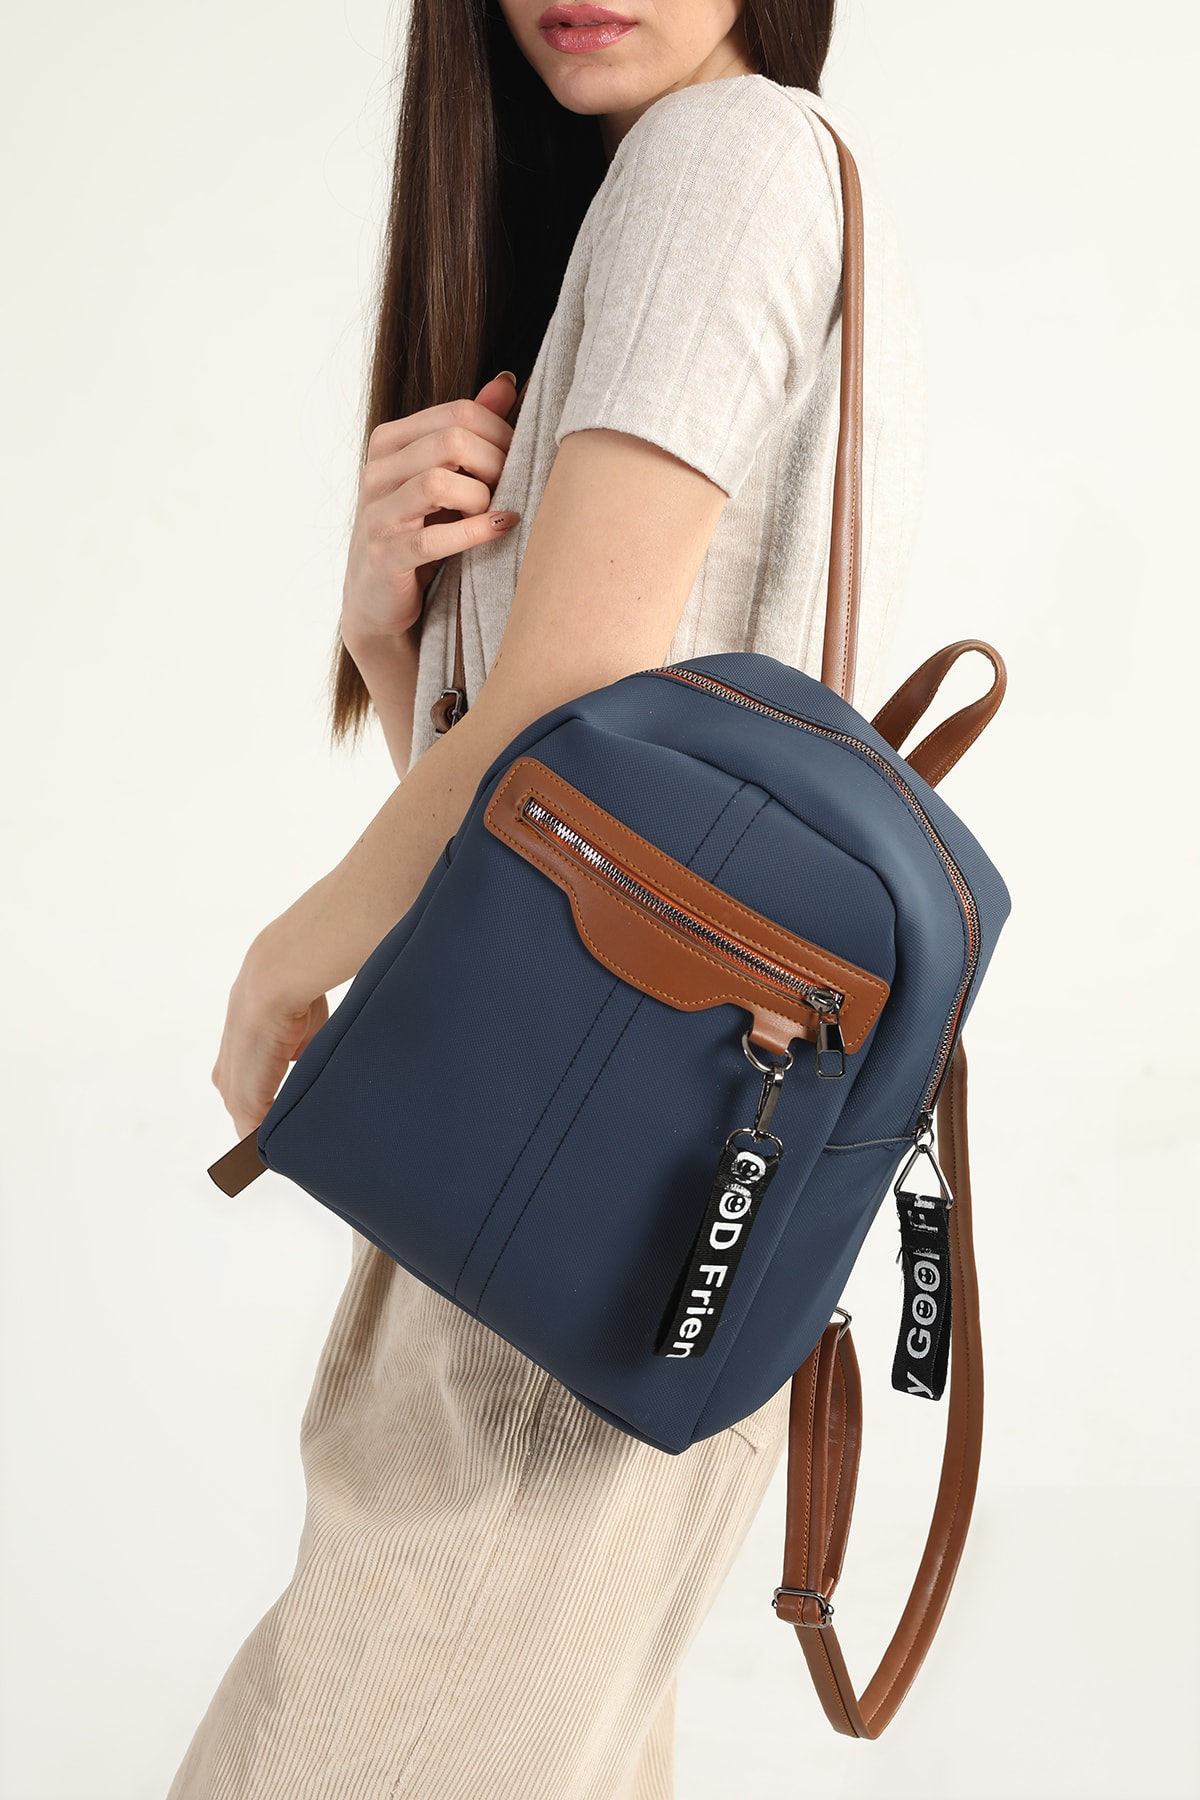 Navy Blue Women's Backpack 2021 Fashion Trend Shoulder Strap Waterproof Velvet Leather Casual Women's Shoulder Bag